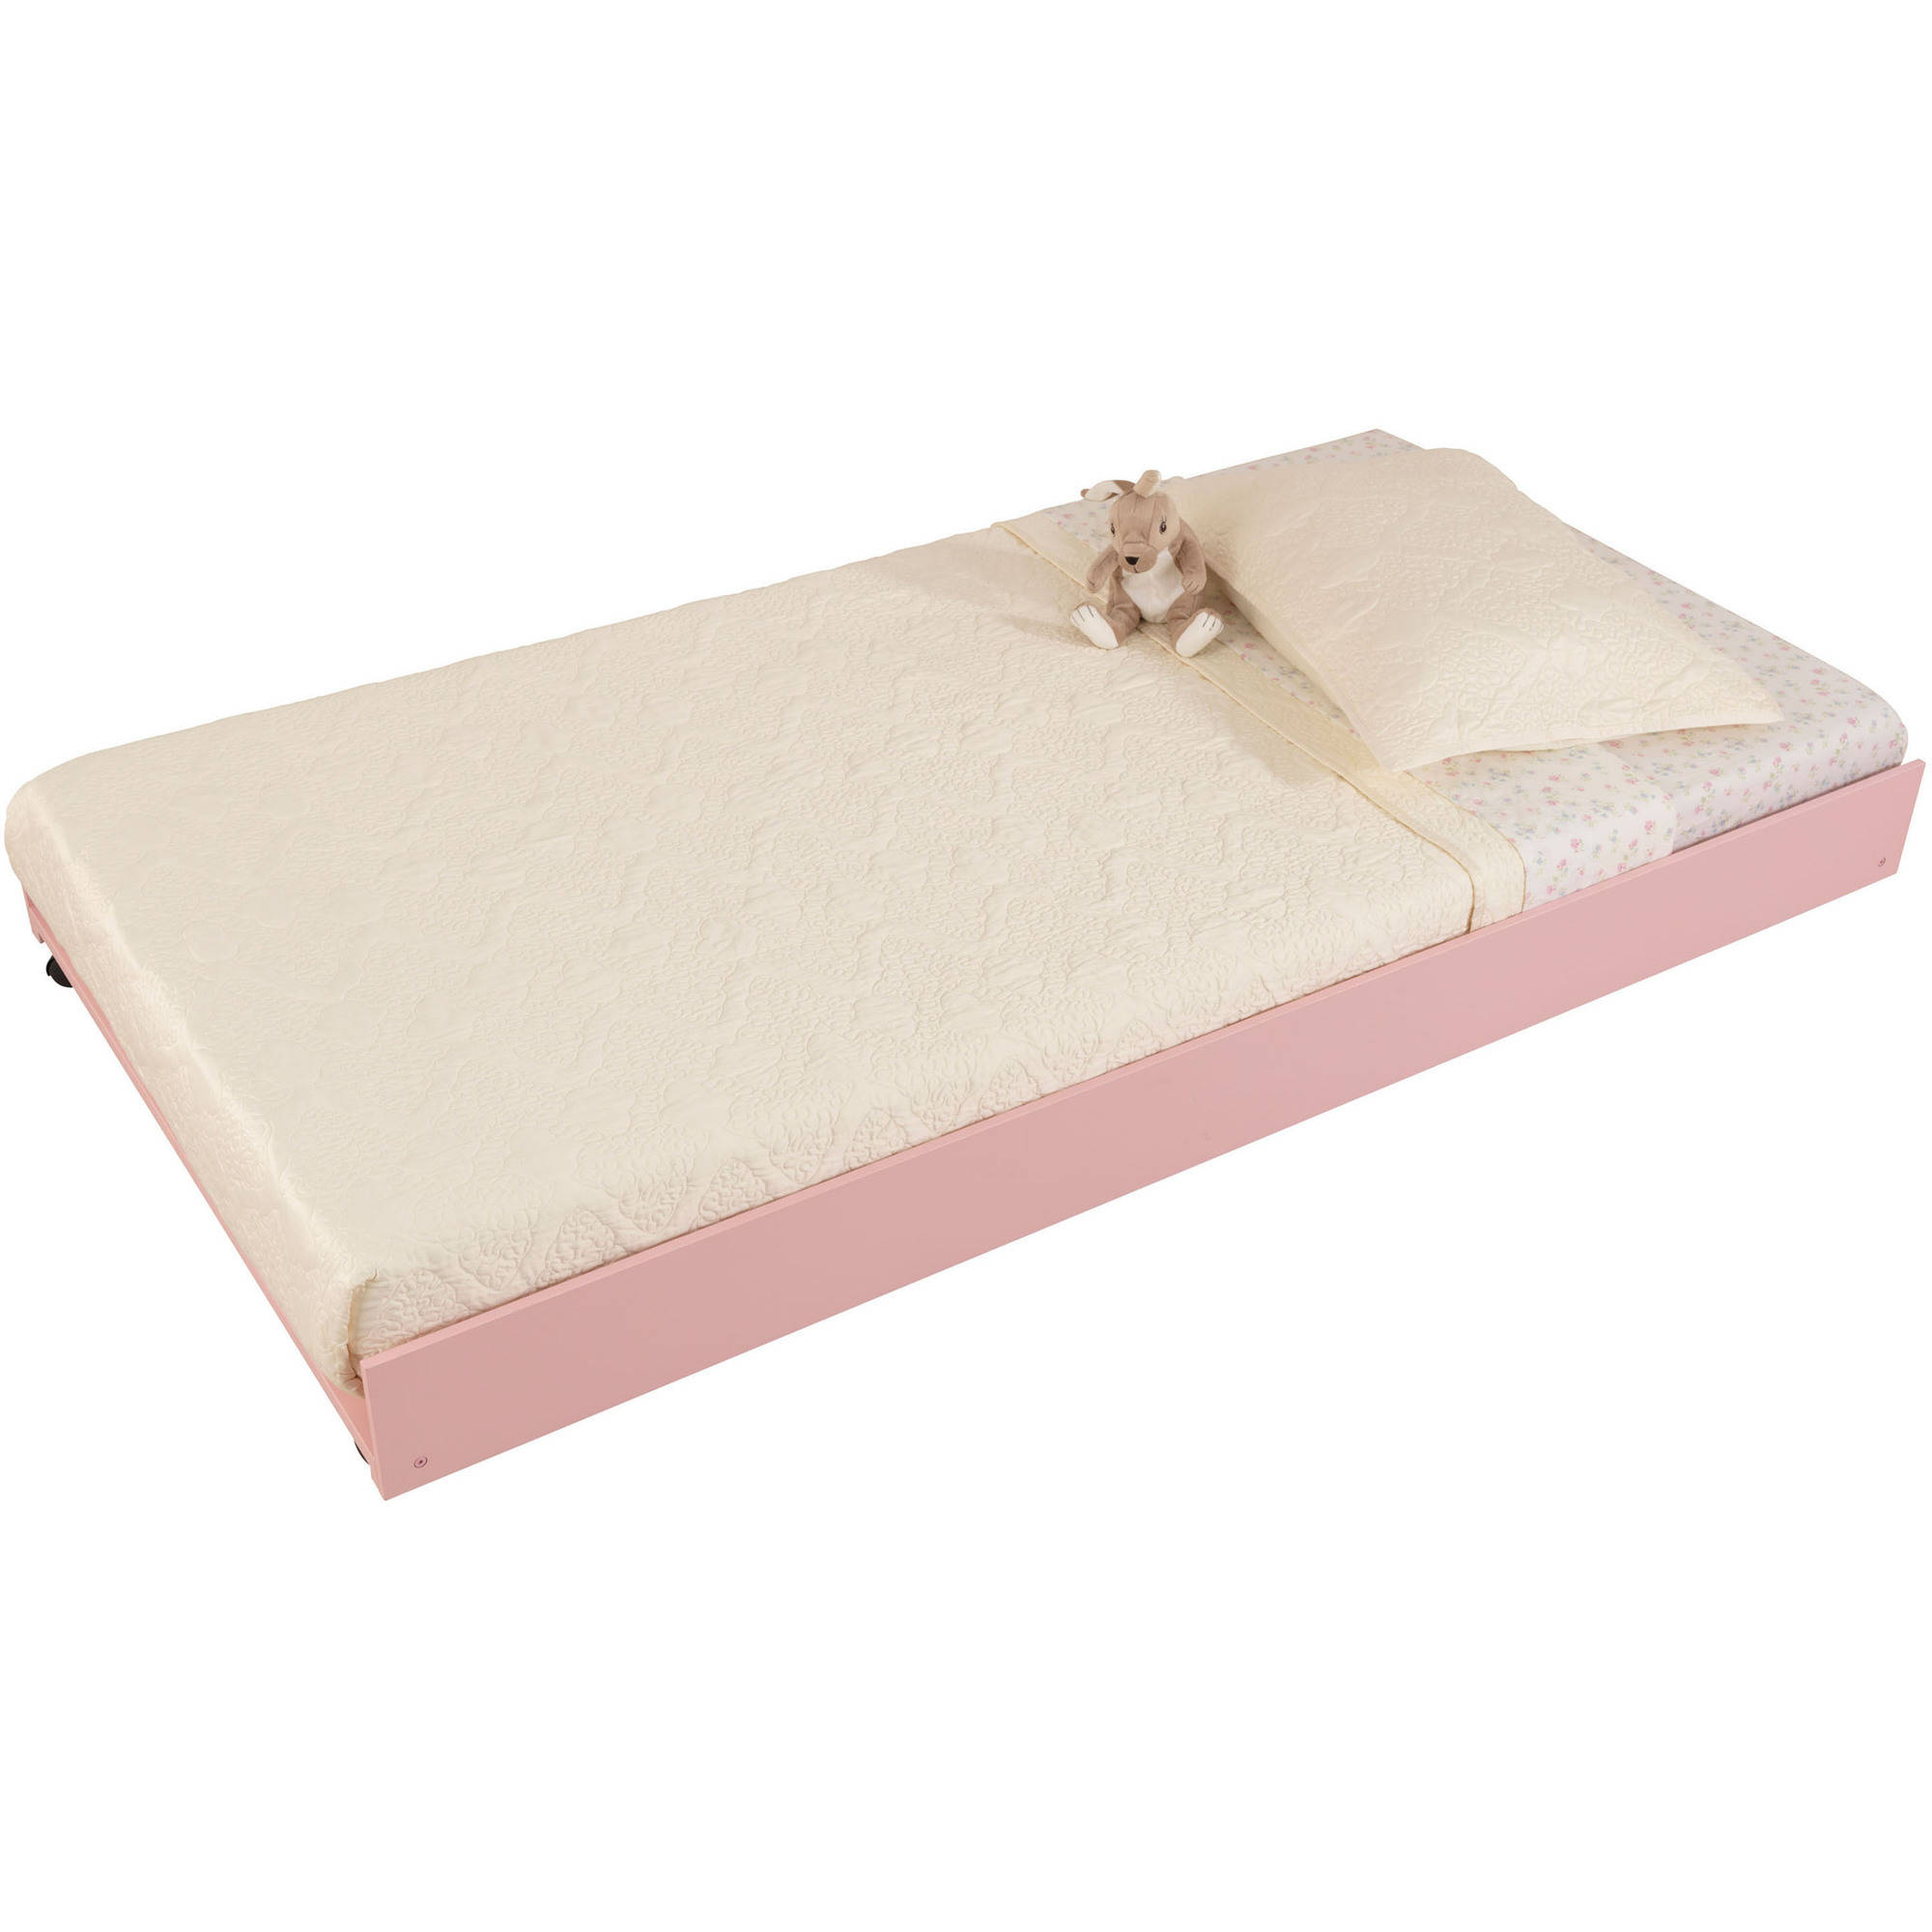 KidKraft Twin Trundle Bed, Pink by KidKraft